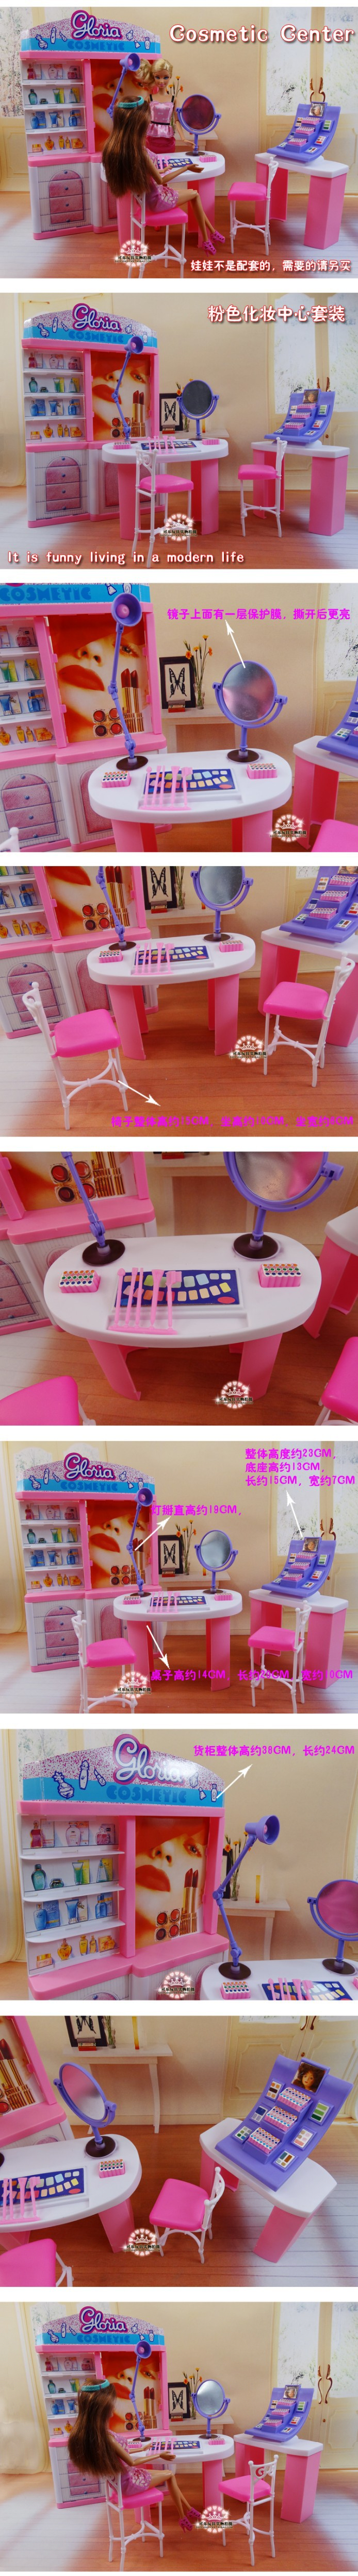 Free Transport Pink Dream make-up Middle dressing room doll equipment doll furnishings for barbie doll,ladies DIY toys